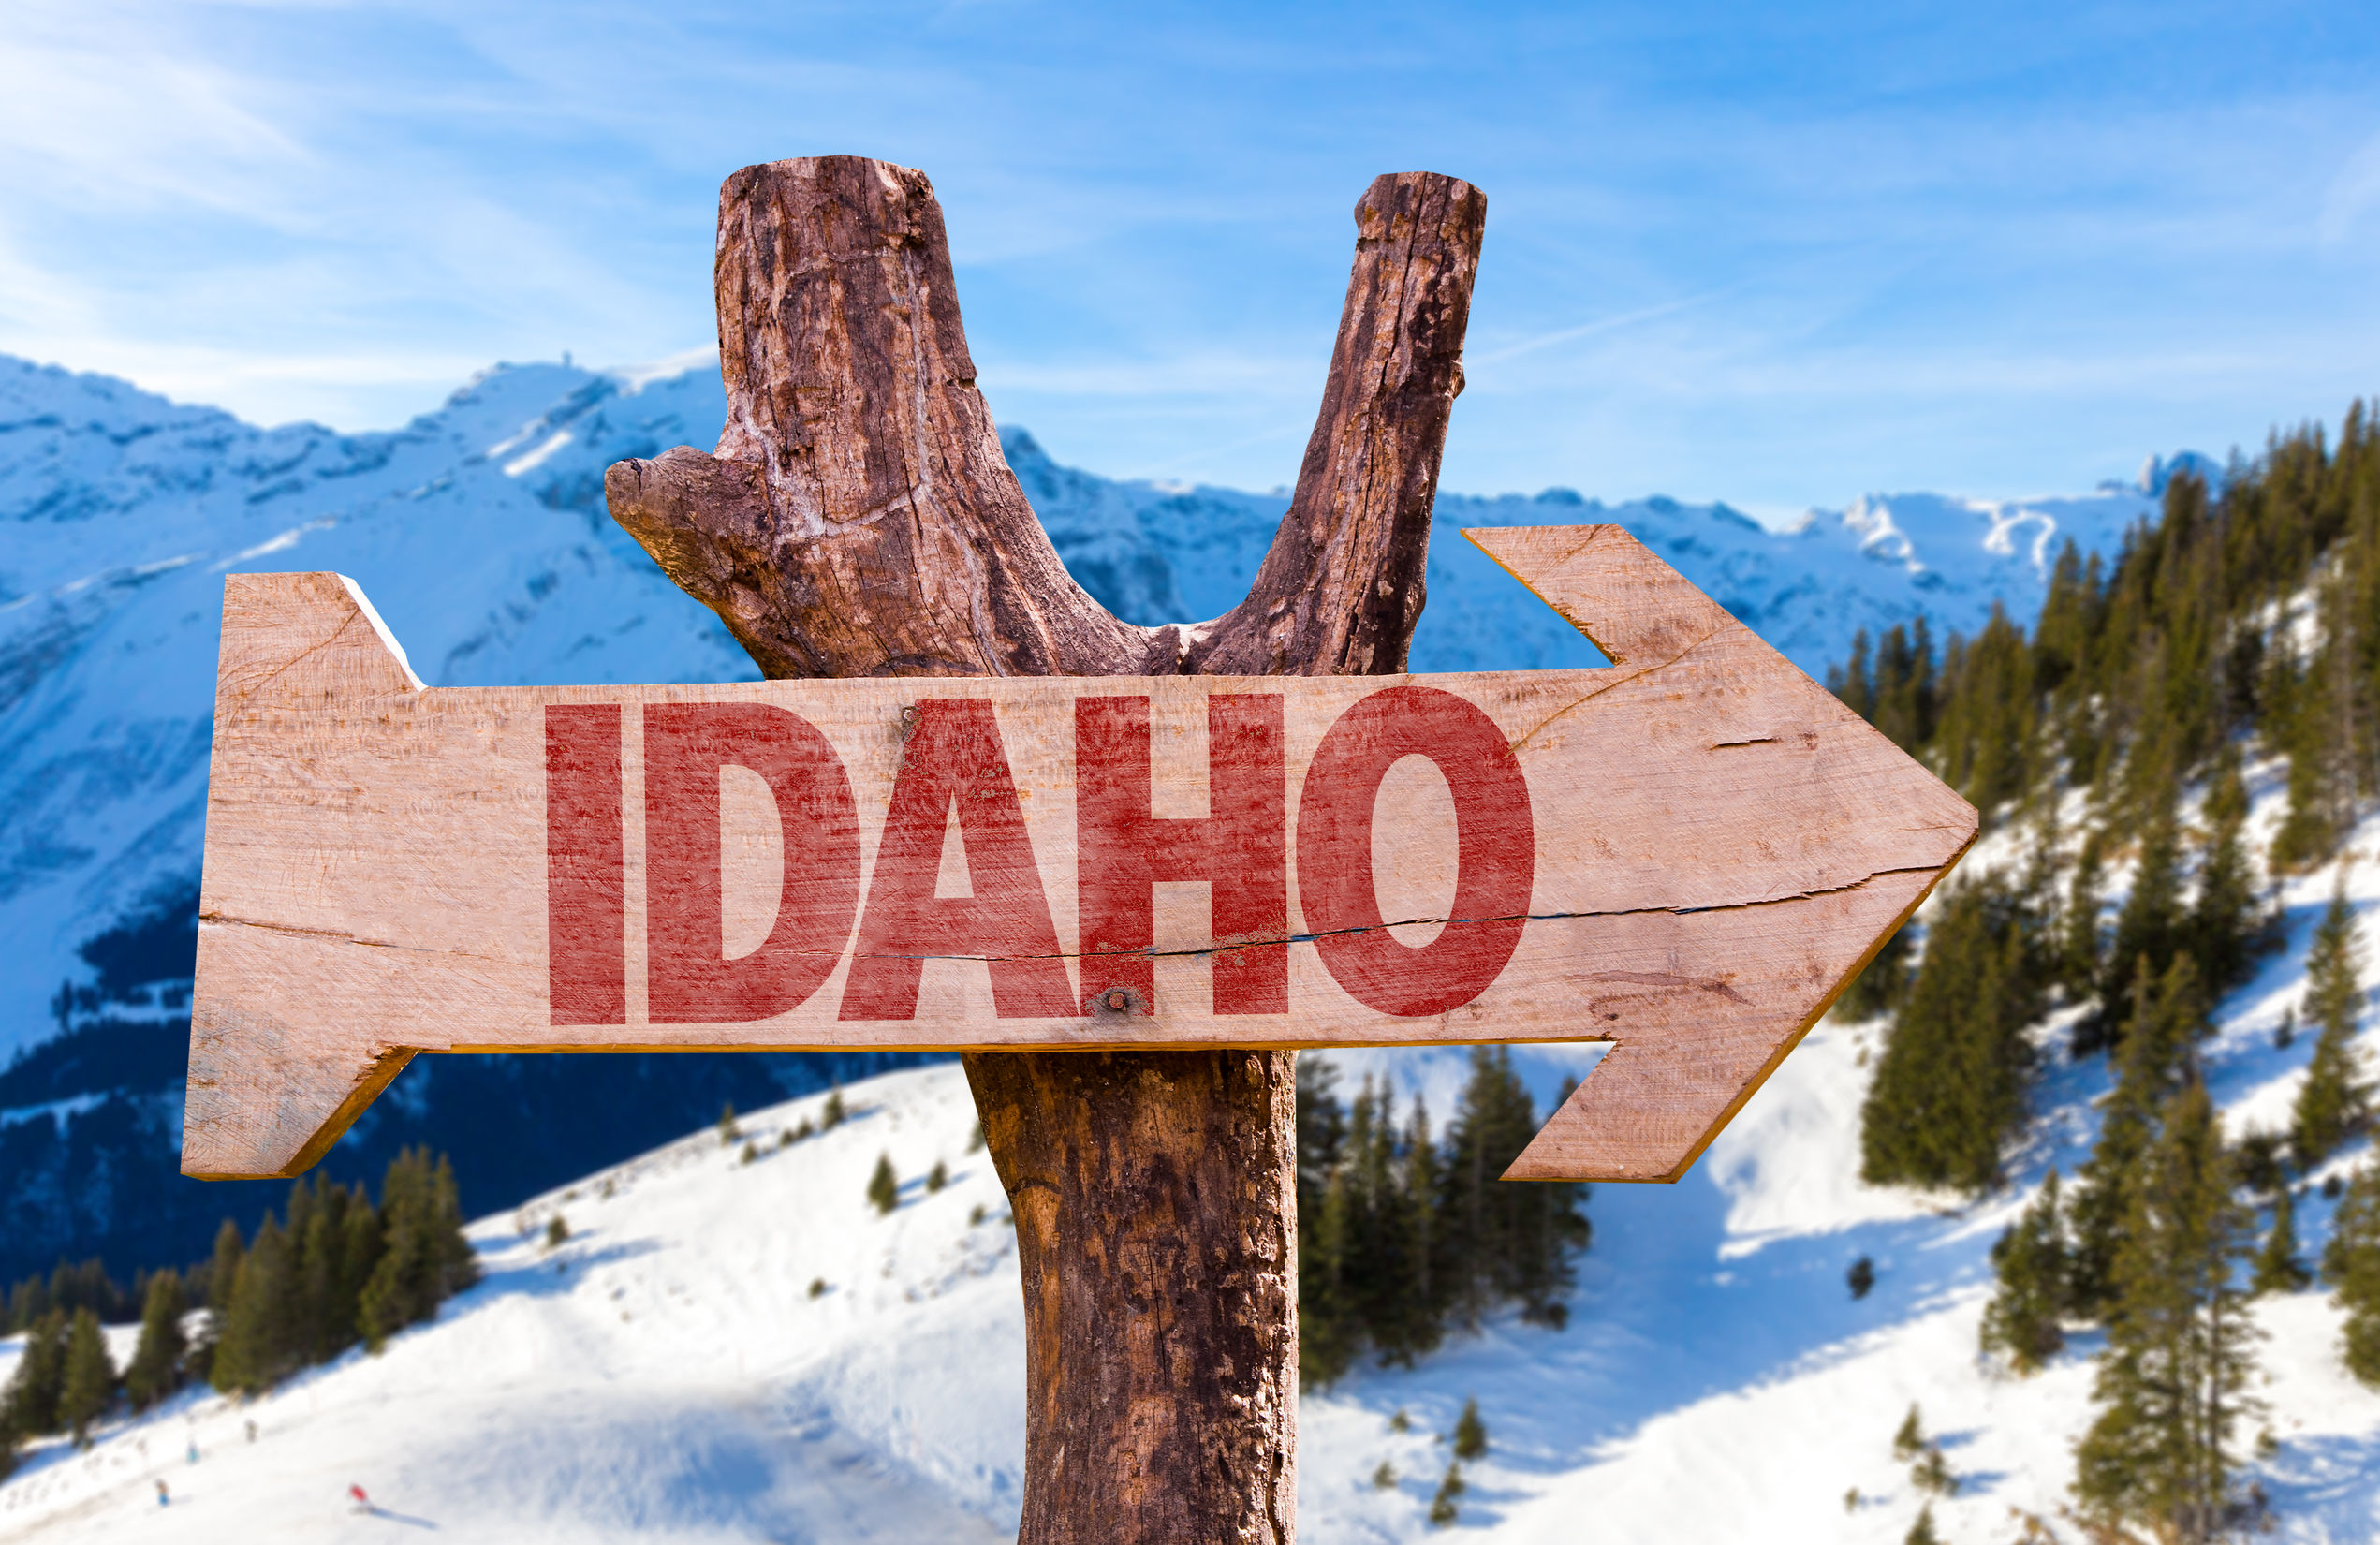 idaho wooden sign with winter background